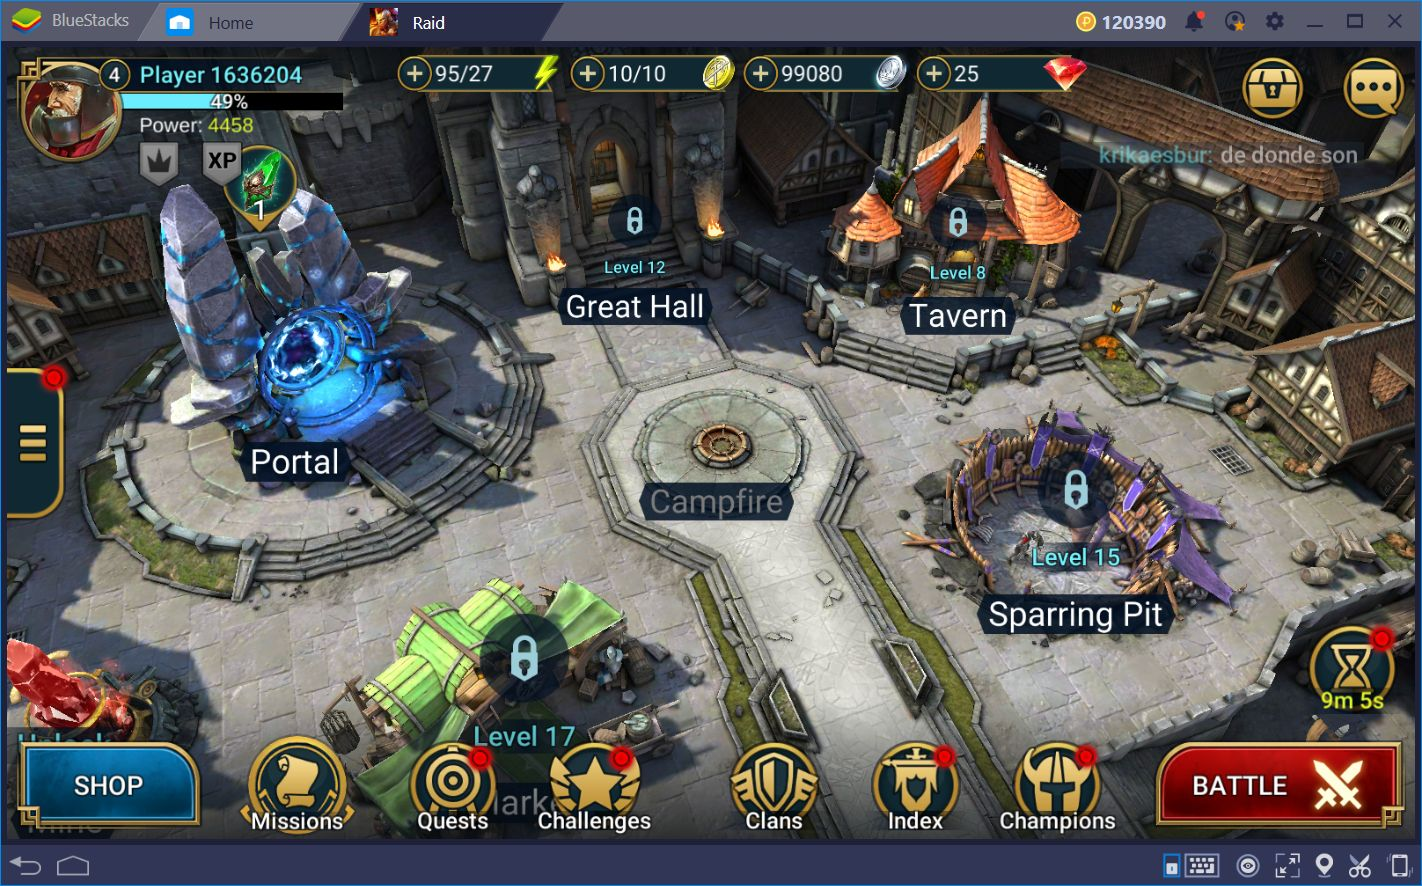 How to Acquire Shards and Expand Your Team in RAID: Shadow Legends